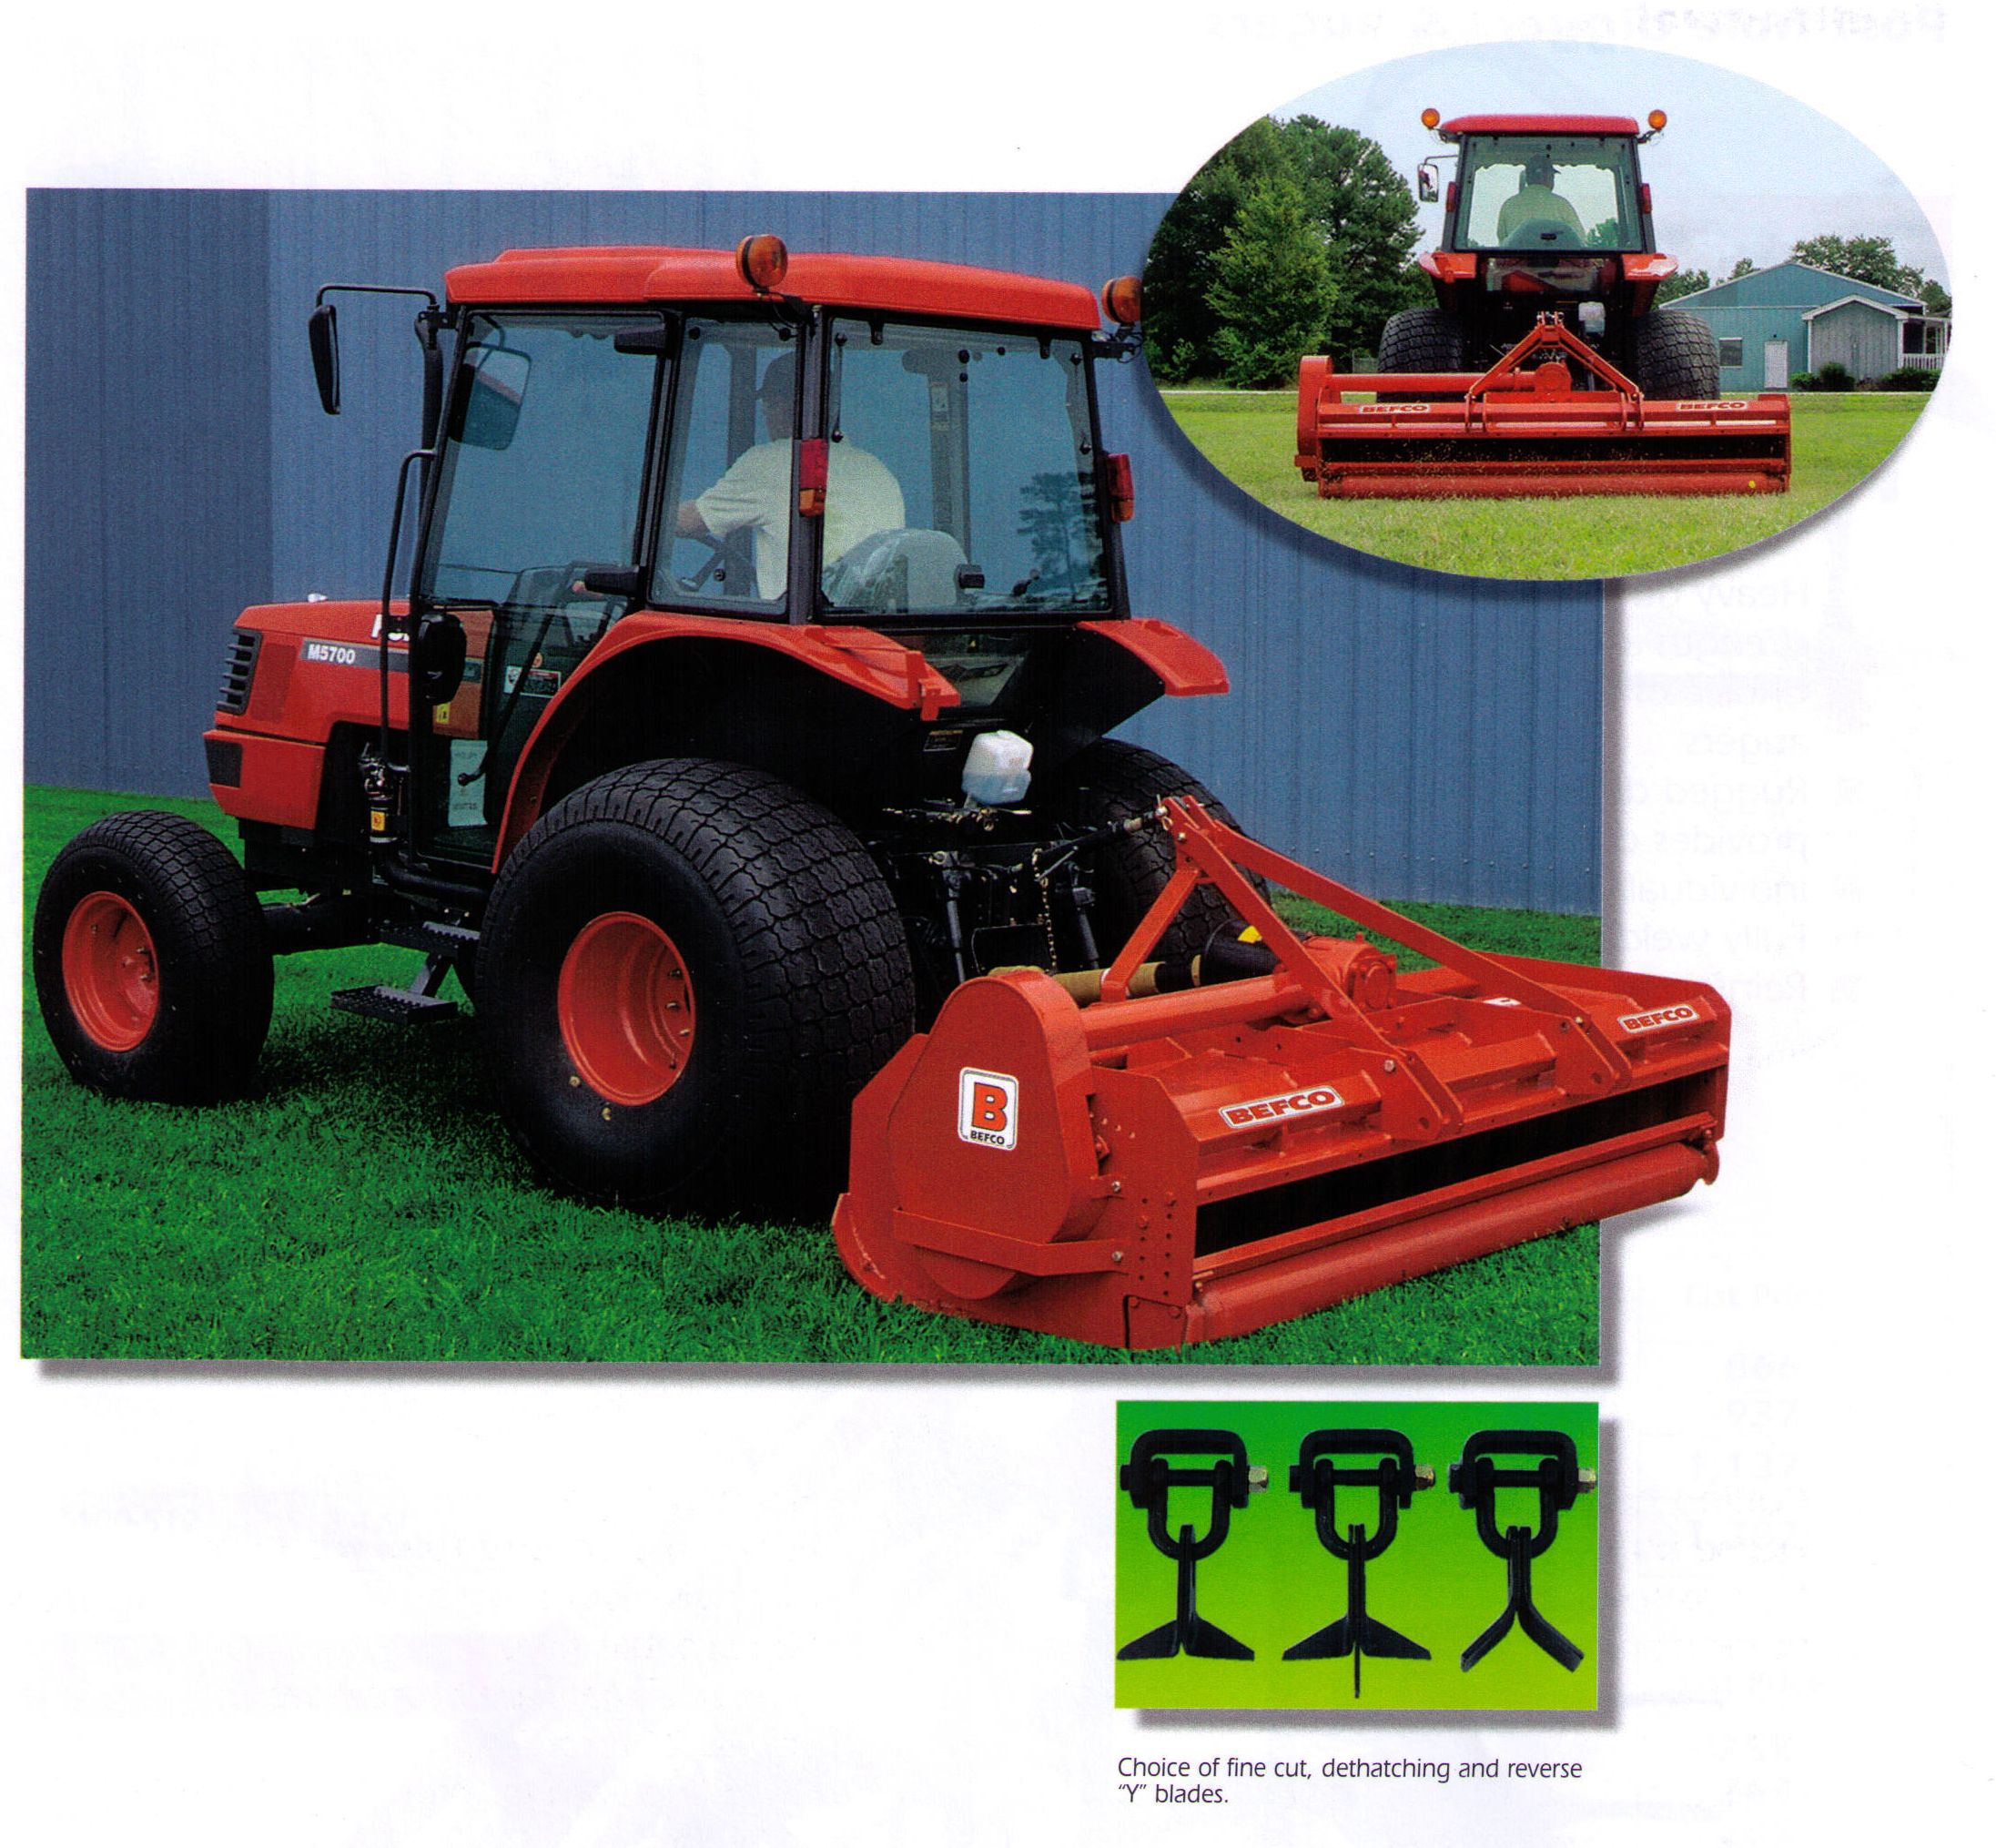 Befco H80 Series Tractor Mounted 540 RPM PTO Driven Flail Mowers